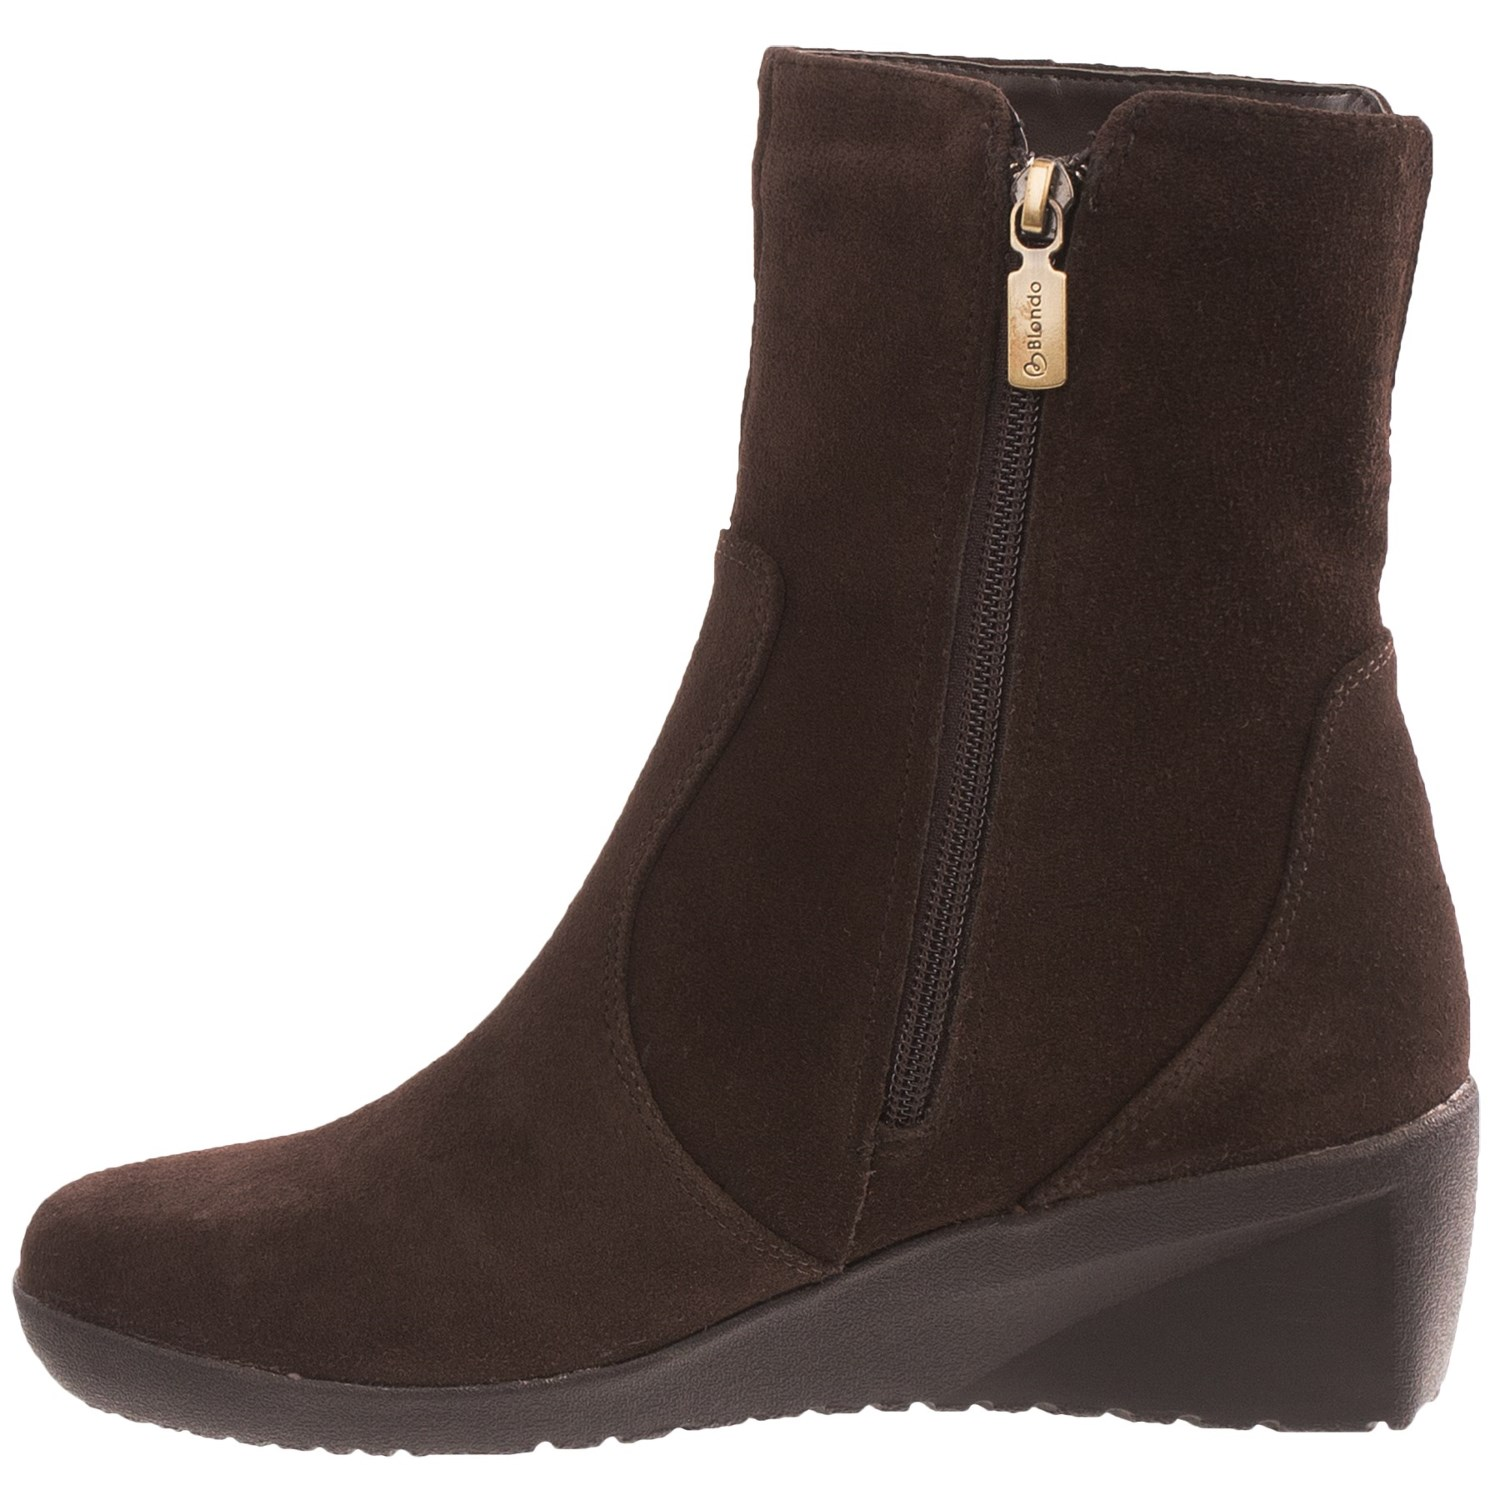 Blondo Corah Wedge Boots For Women 7407f Save 69